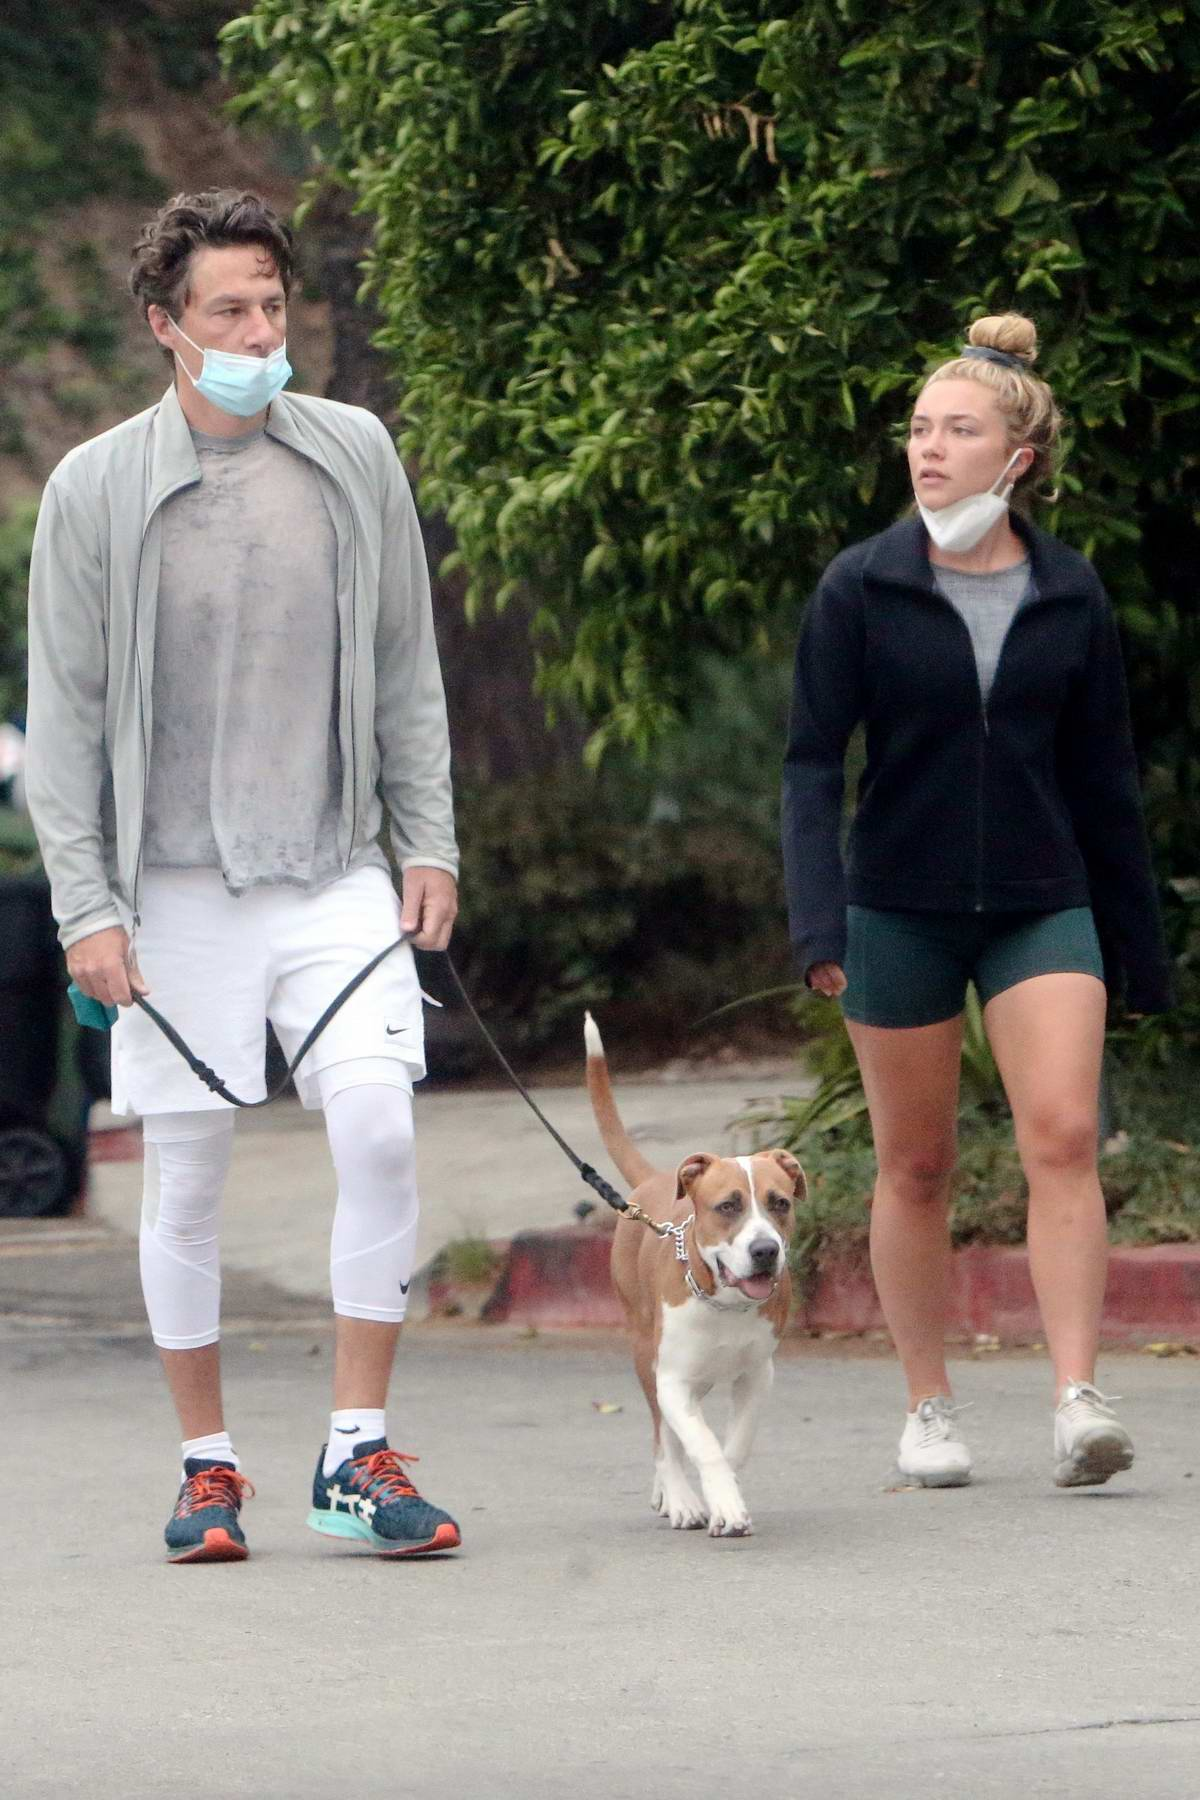 Florence Pugh takes an early walk with boyfriend Zach Braff and their dog around their neighborhood in Los Angeles